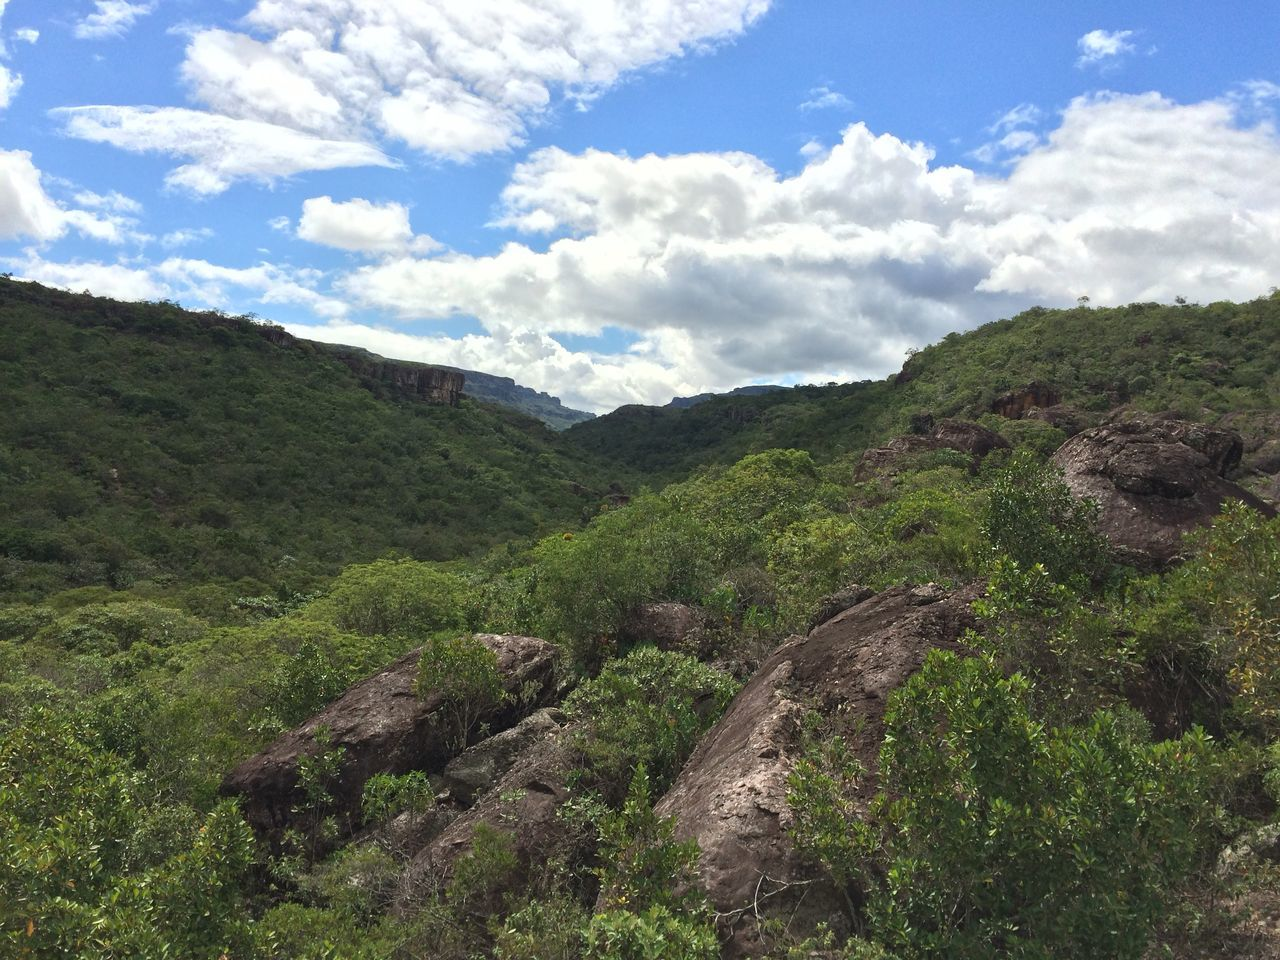 nature, mountain, sky, landscape, vegetation, beauty in nature, no people, outdoors, scenics, growth, day, foliage, tree